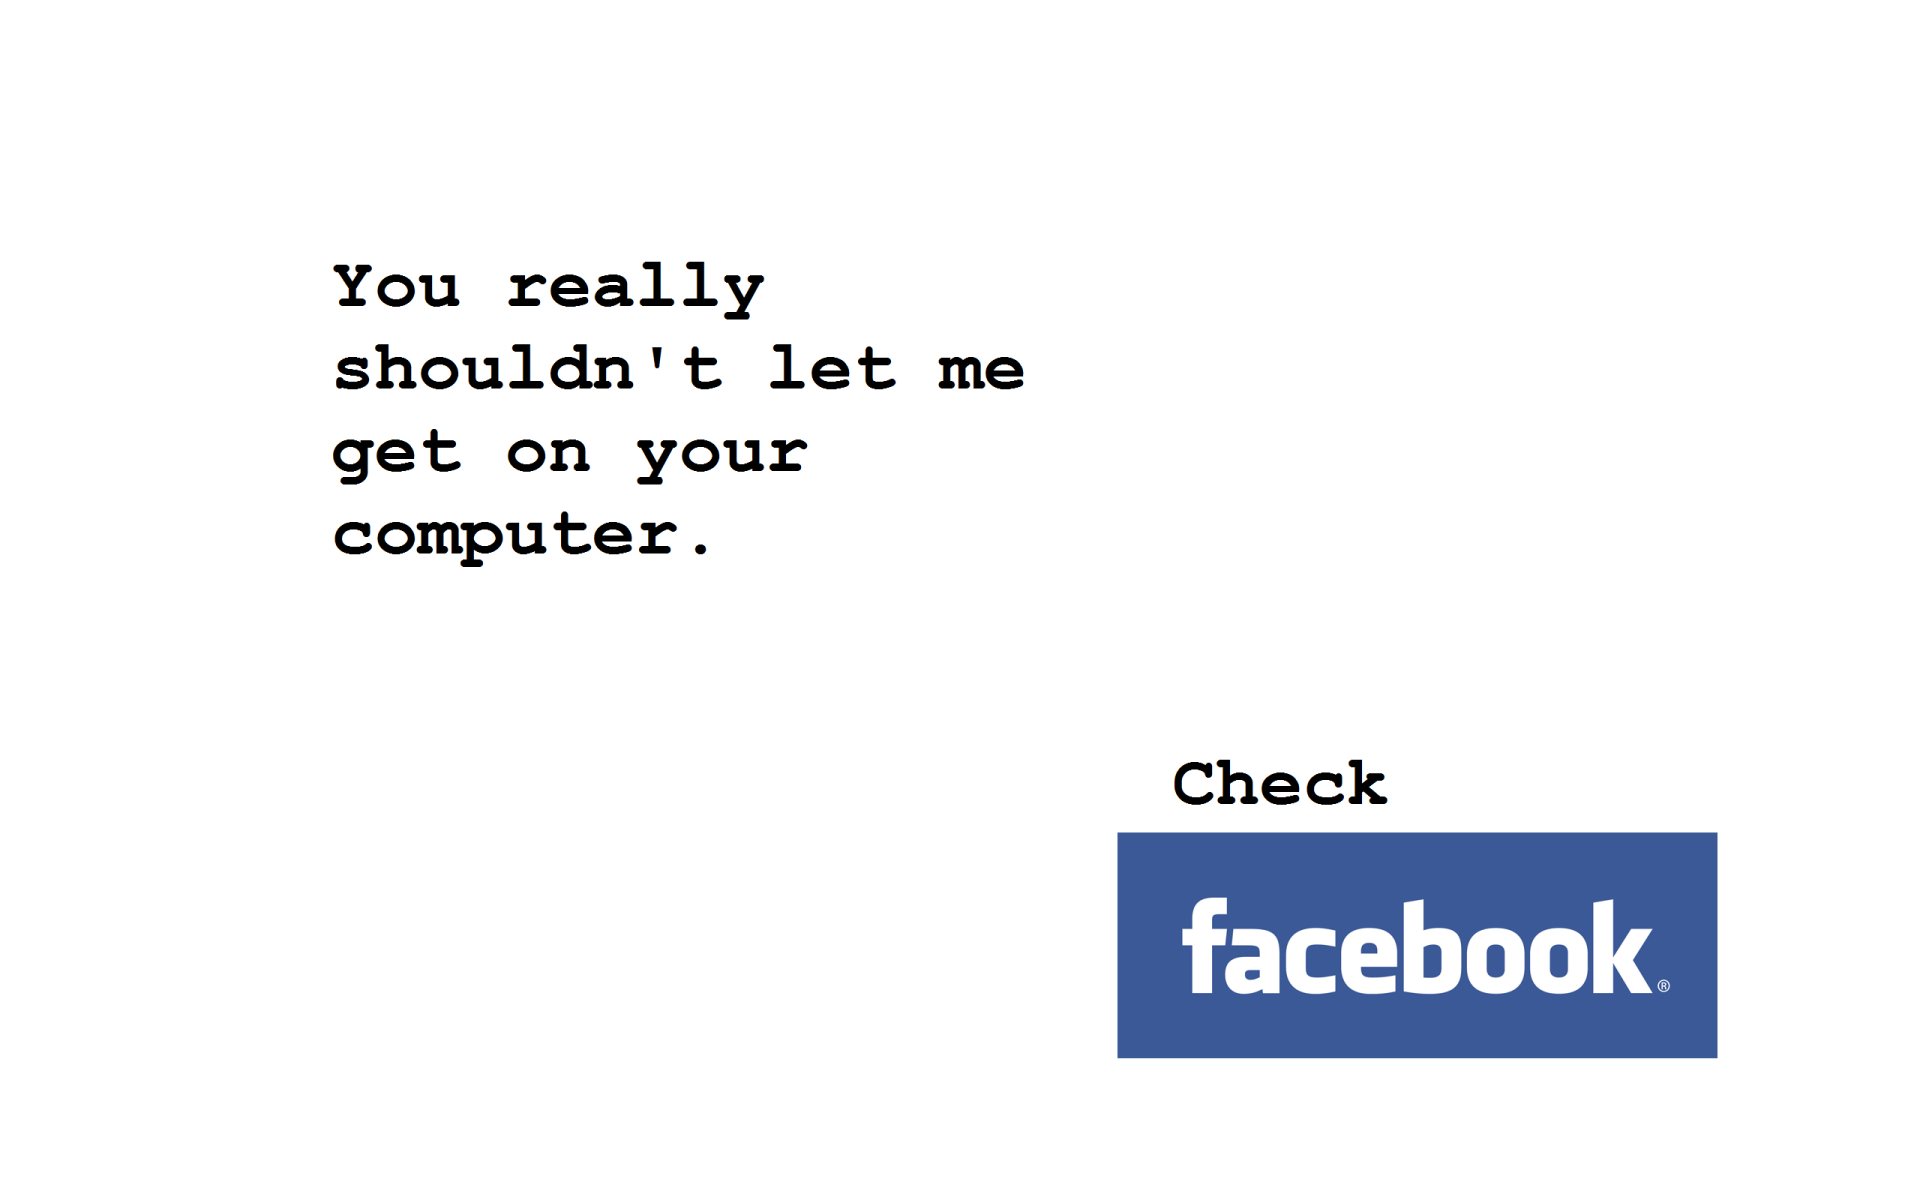 Humor - Computer  Facebook Wallpaper